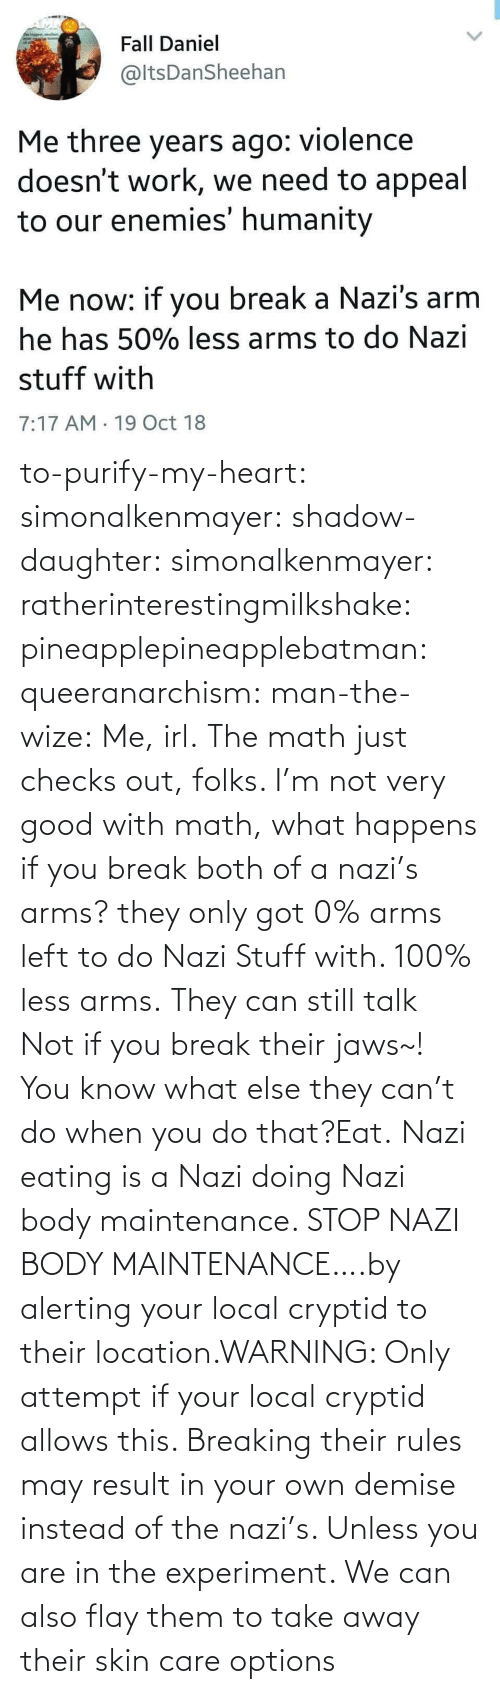 skin: to-purify-my-heart:  simonalkenmayer:  shadow-daughter: simonalkenmayer:  ratherinterestingmilkshake:  pineapplepineapplebatman:  queeranarchism:  man-the-wize: Me, irl. The math just checks out, folks.     I'm not very good with math, what happens if you break both of a nazi's arms?  they only got 0% arms left to do Nazi Stuff with. 100% less arms.  They can still talk  Not if you break their jaws~!  You know what else they can't do when you do that?Eat.   Nazi eating is a Nazi doing Nazi body maintenance. STOP NAZI BODY MAINTENANCE….by alerting your local cryptid to their location.WARNING: Only attempt if your local cryptid allows this. Breaking their rules may result in your own demise instead of the nazi's. Unless you are in the experiment.    We can also flay them to take away their skin care options